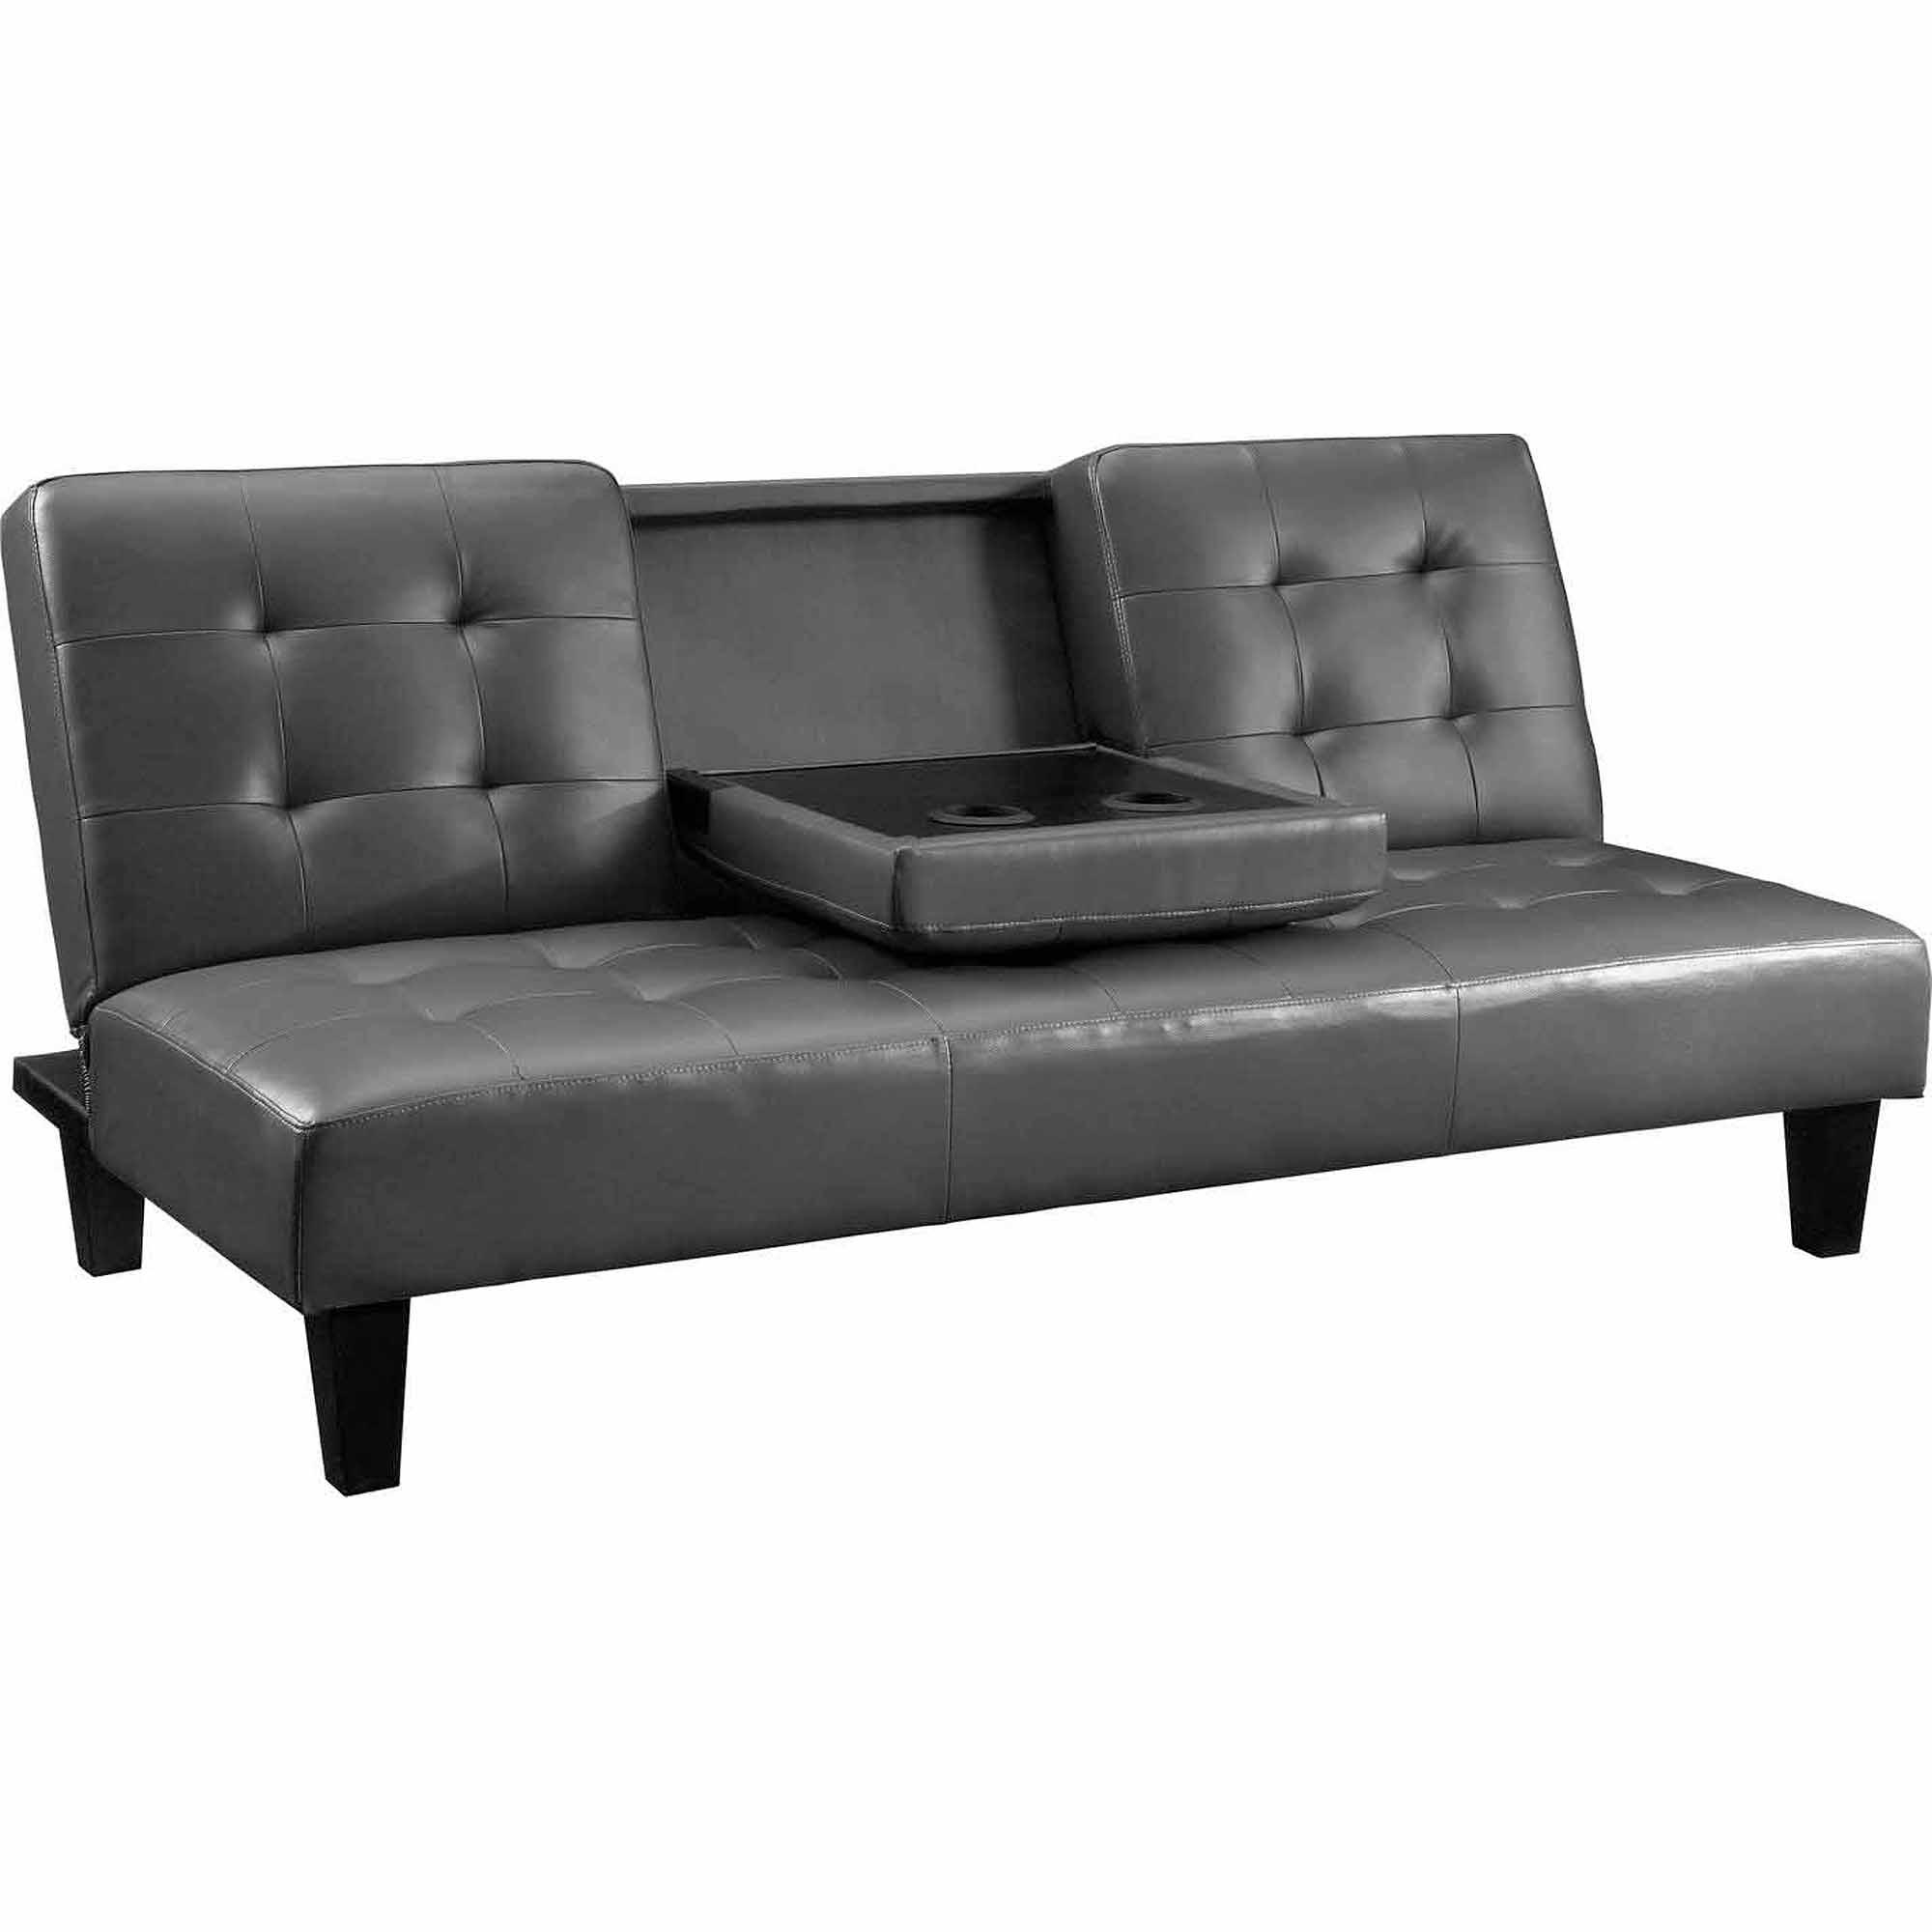 Sofas Center : Emily Faux Leather Convertiblen Sofa Bedleather Intended For Faux Leather Futon Sofas (View 14 of 20)